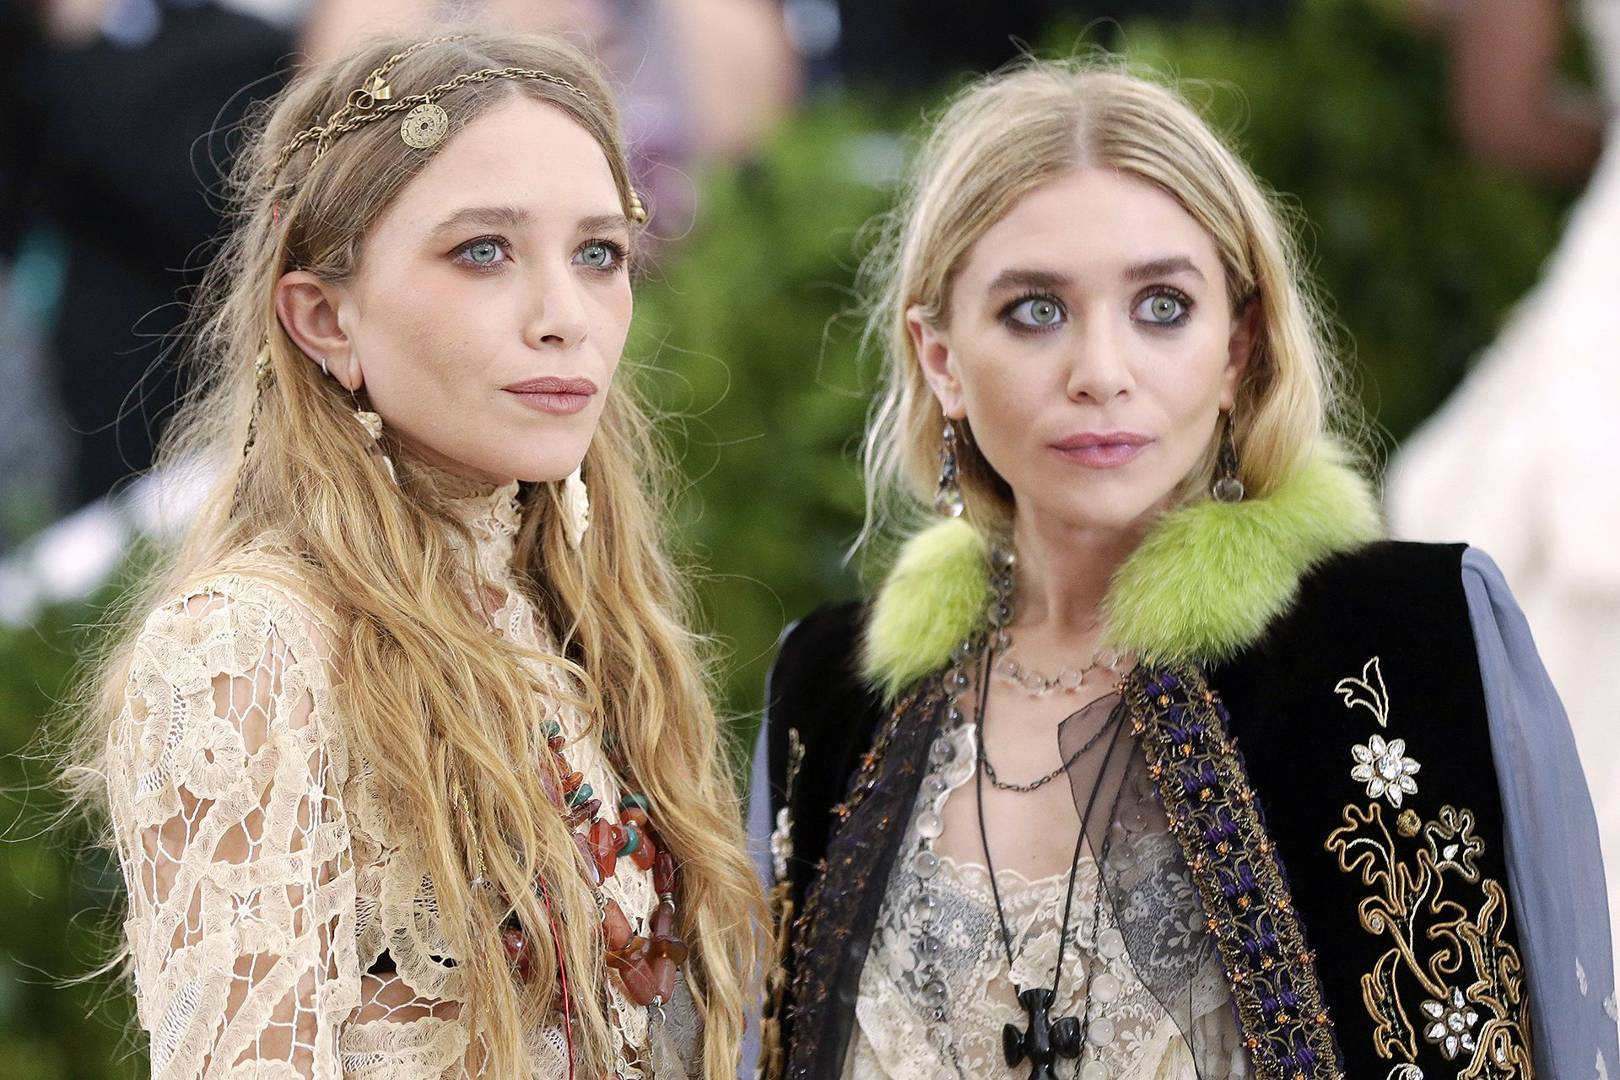 bc61e9b298 Mary Kate and Ashley Olsen twins  beauty looks